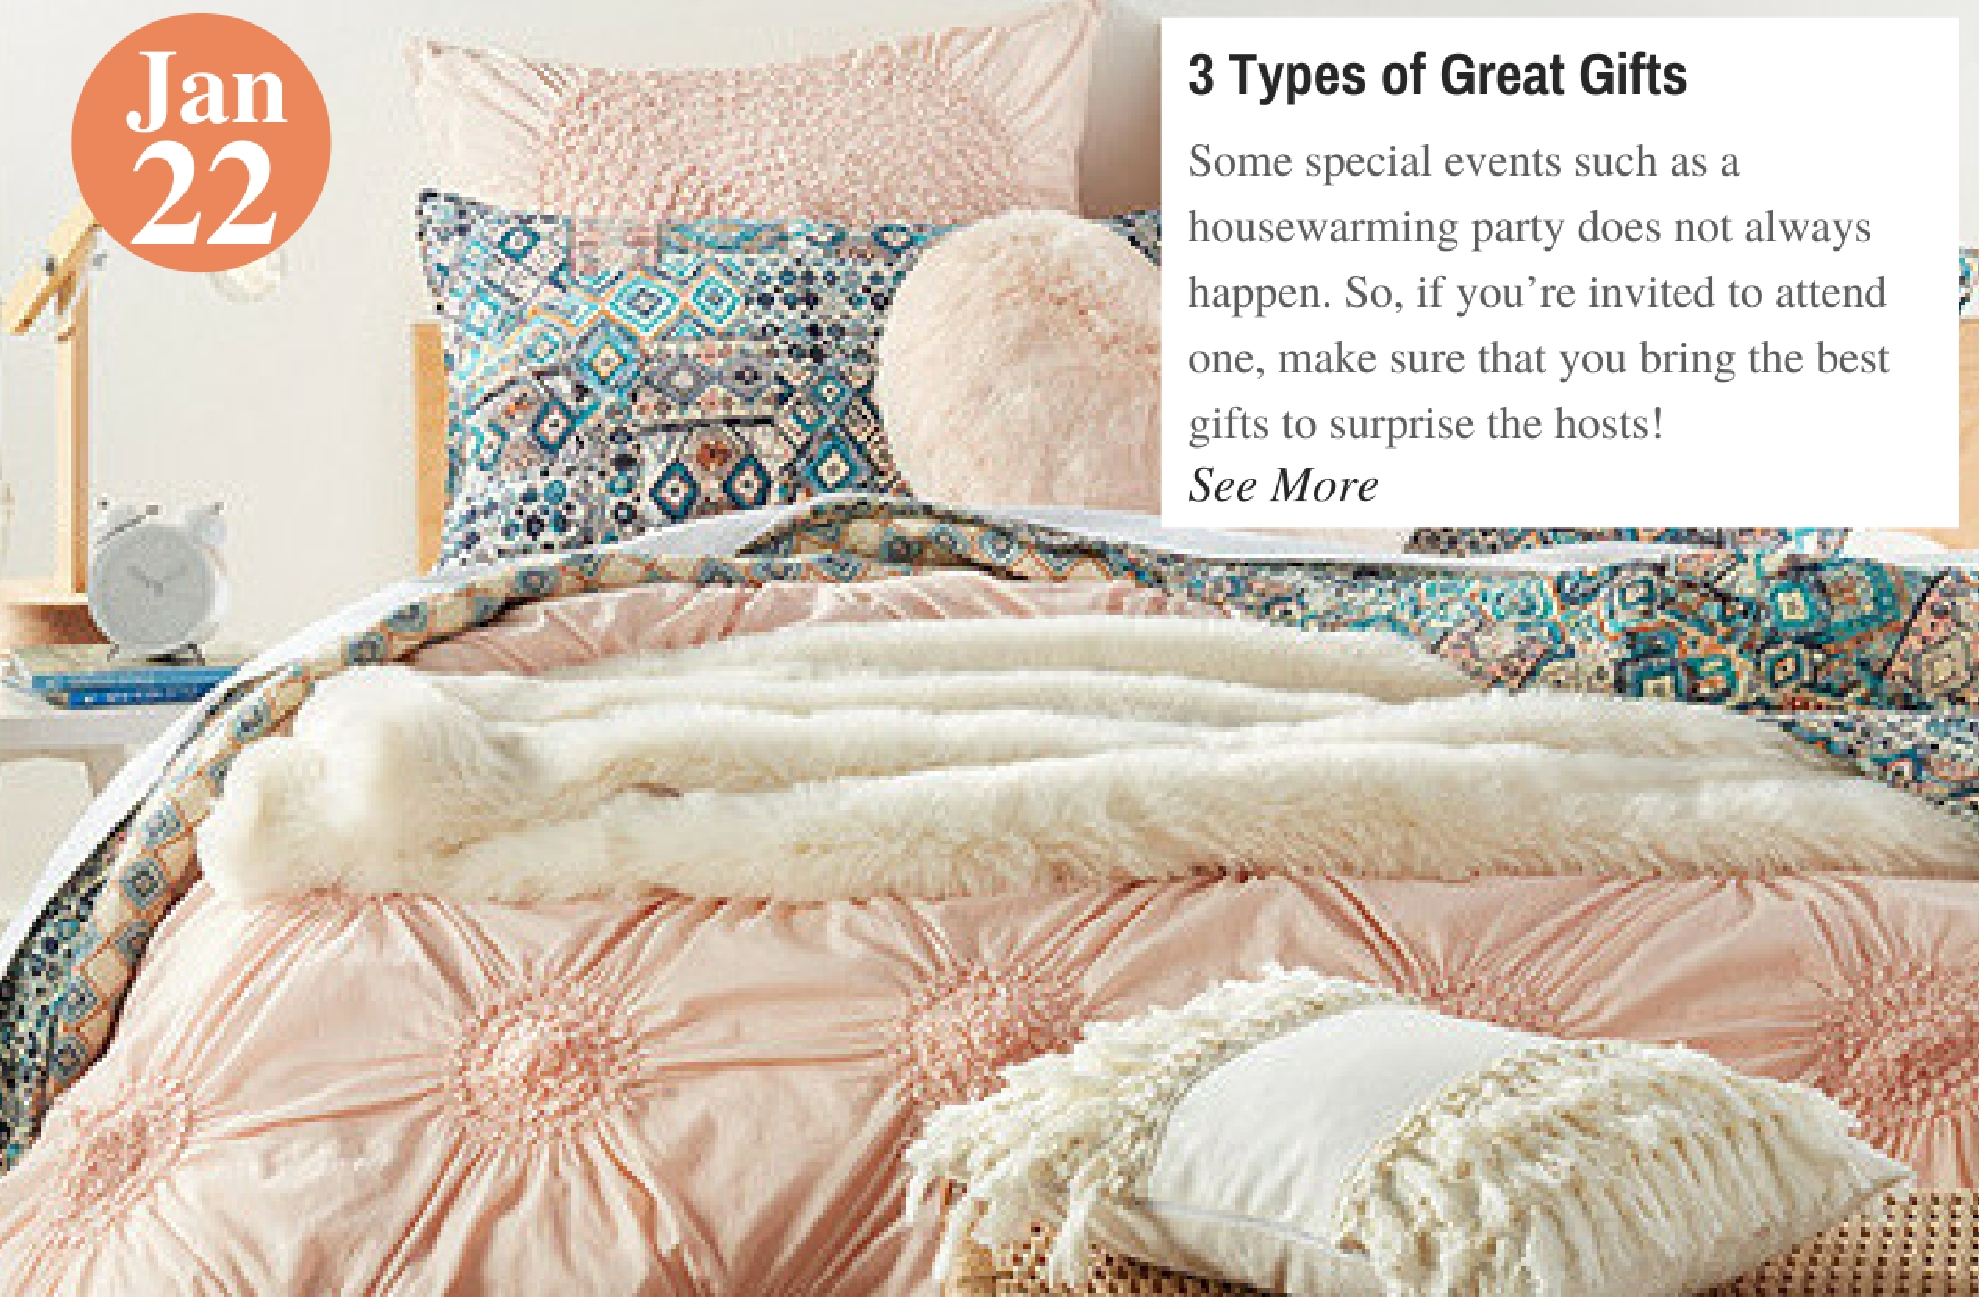 3 Types of Great Gifts